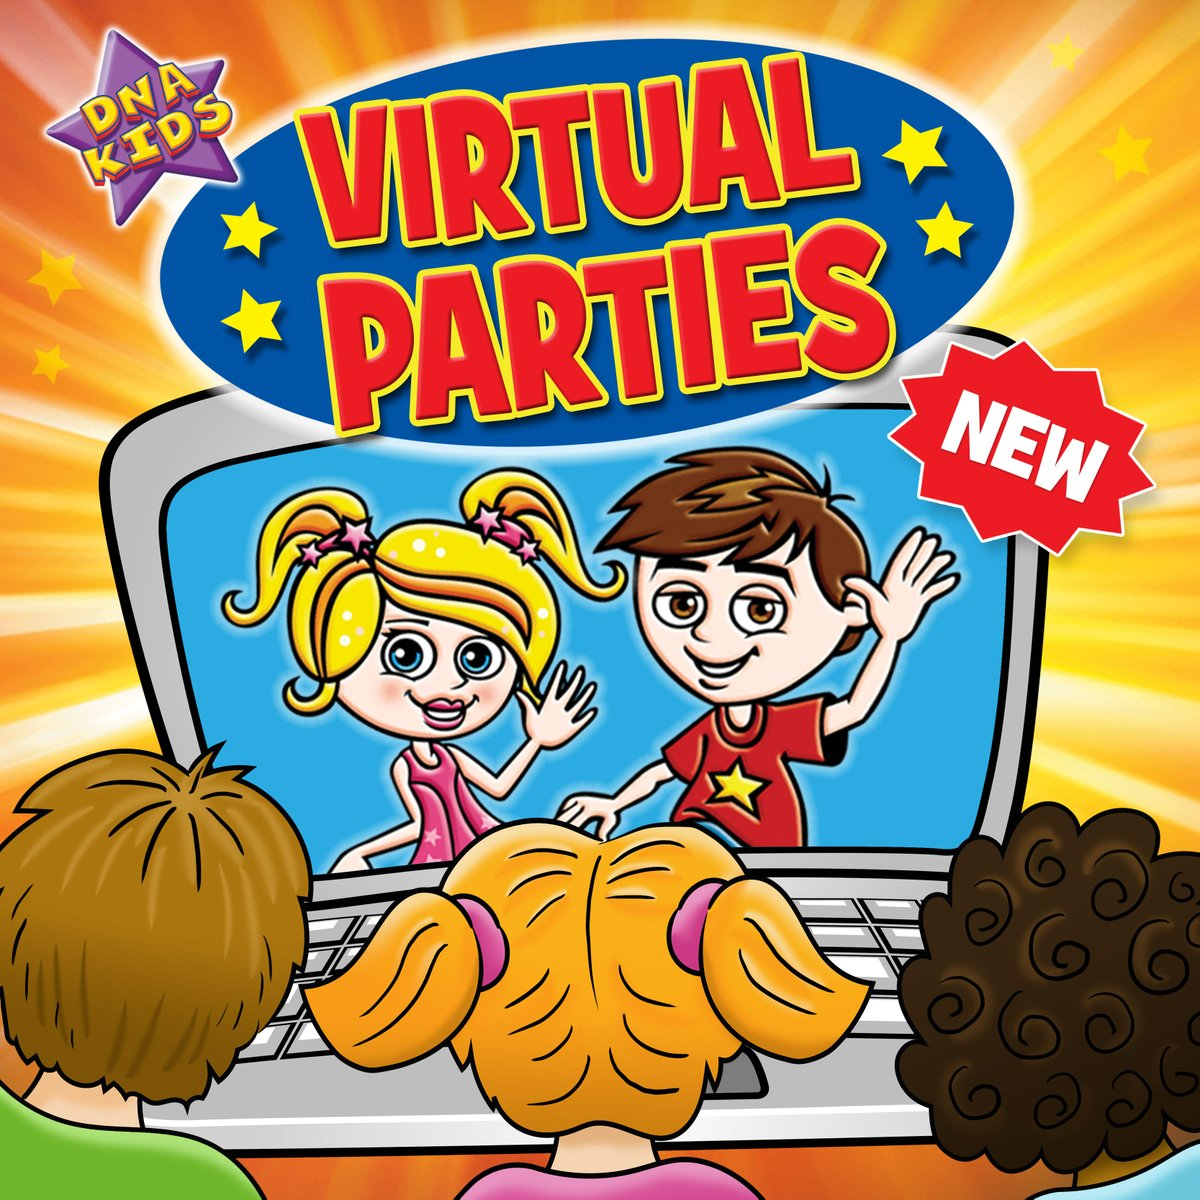 BOOK OUR VIRTUAL PARTIES ONLINE!  Woo-hoo you can now book our awesome Virtual Parties online, perfect for 4 - 11 year olds! Please visit https://www.dnakidsdiary.co.uk/booking   #DNAKids #DNAKidsParties #BookingOnline #VirtualParty #OnlineParty #VirtualParties #OnlineParties #KidsParties pic.twitter.com/ywyMVN0MUr